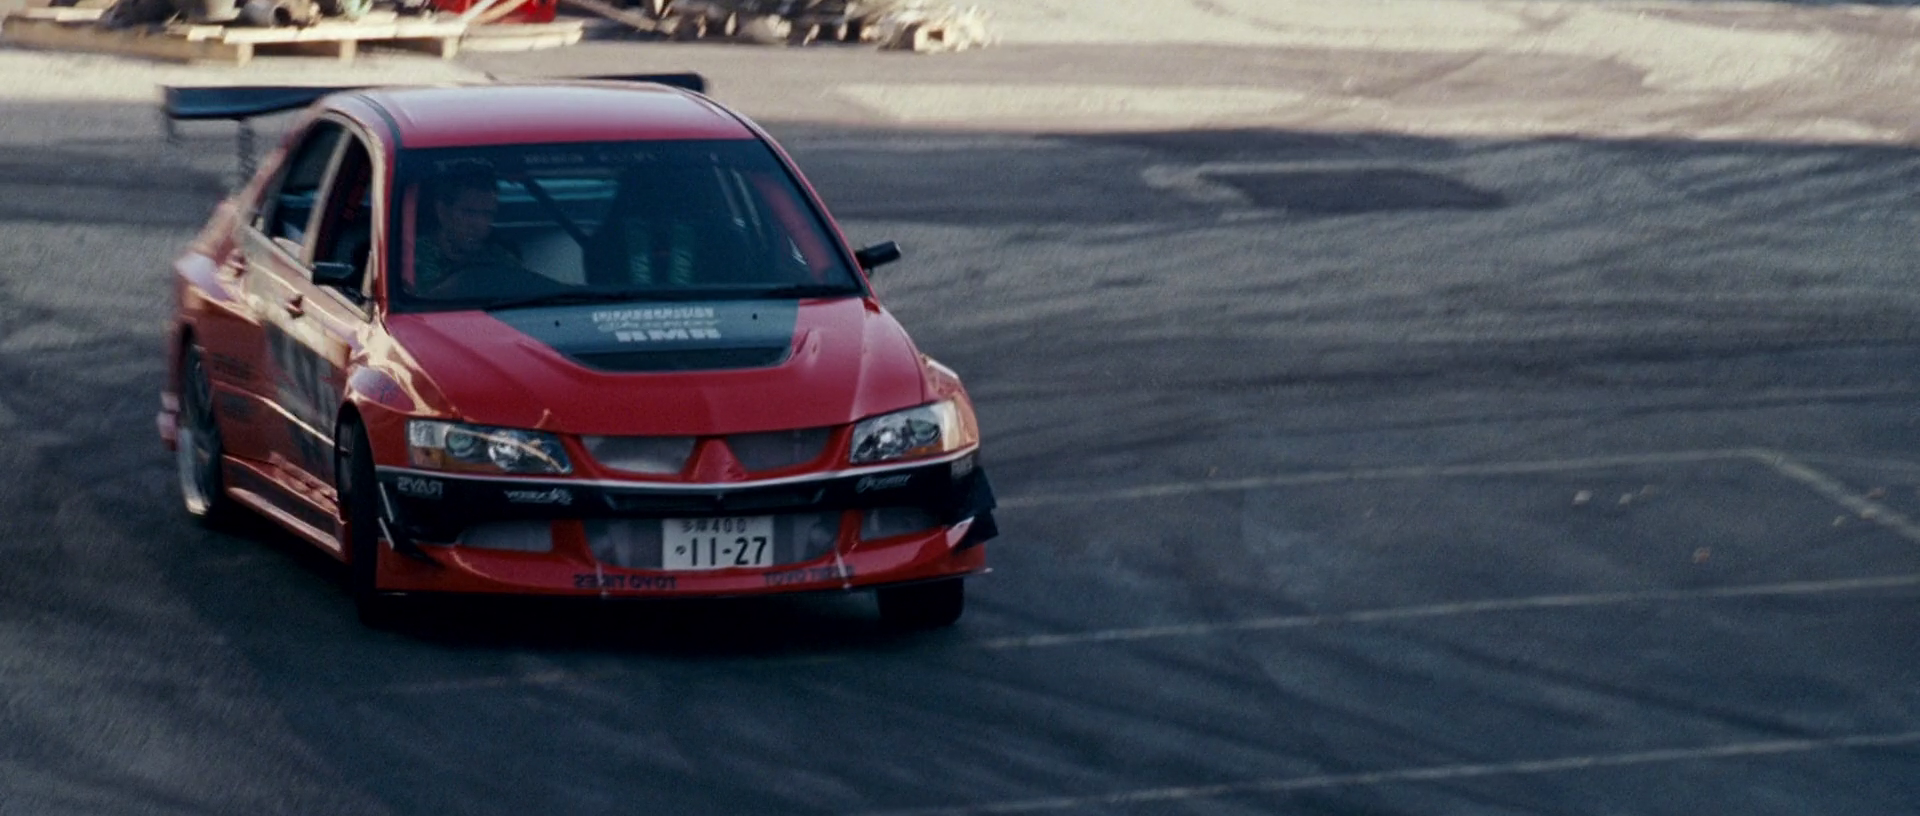 Image  2006 Evolution IX  Tokyo Drift 2png  The Fast and the